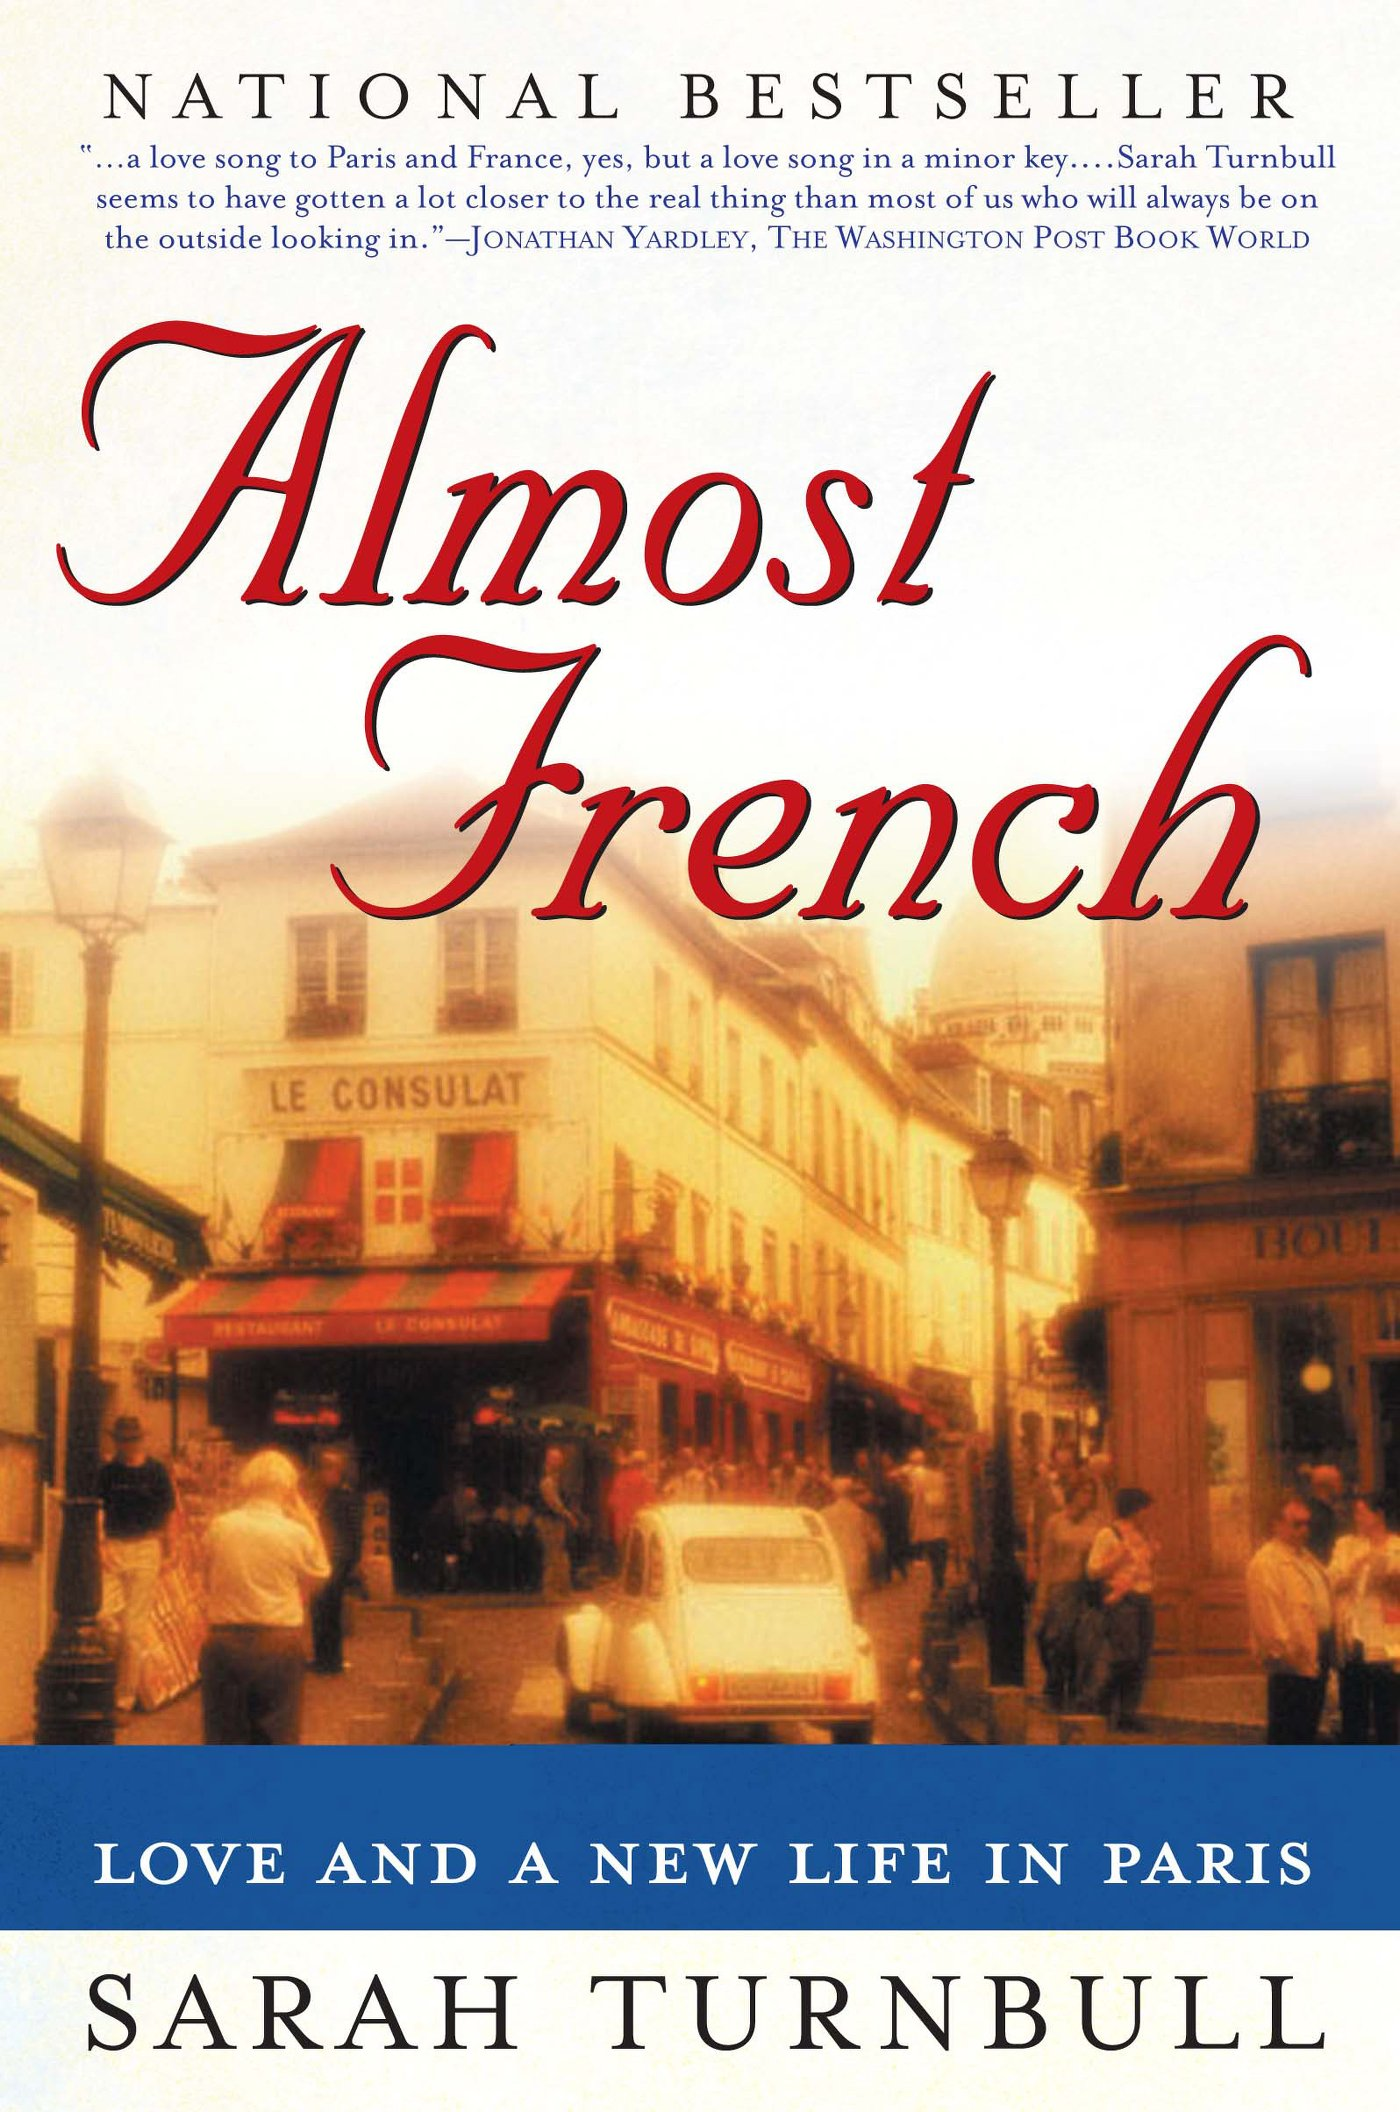 Almost French: Love and a New Life in Paris by Sarah Turnbull